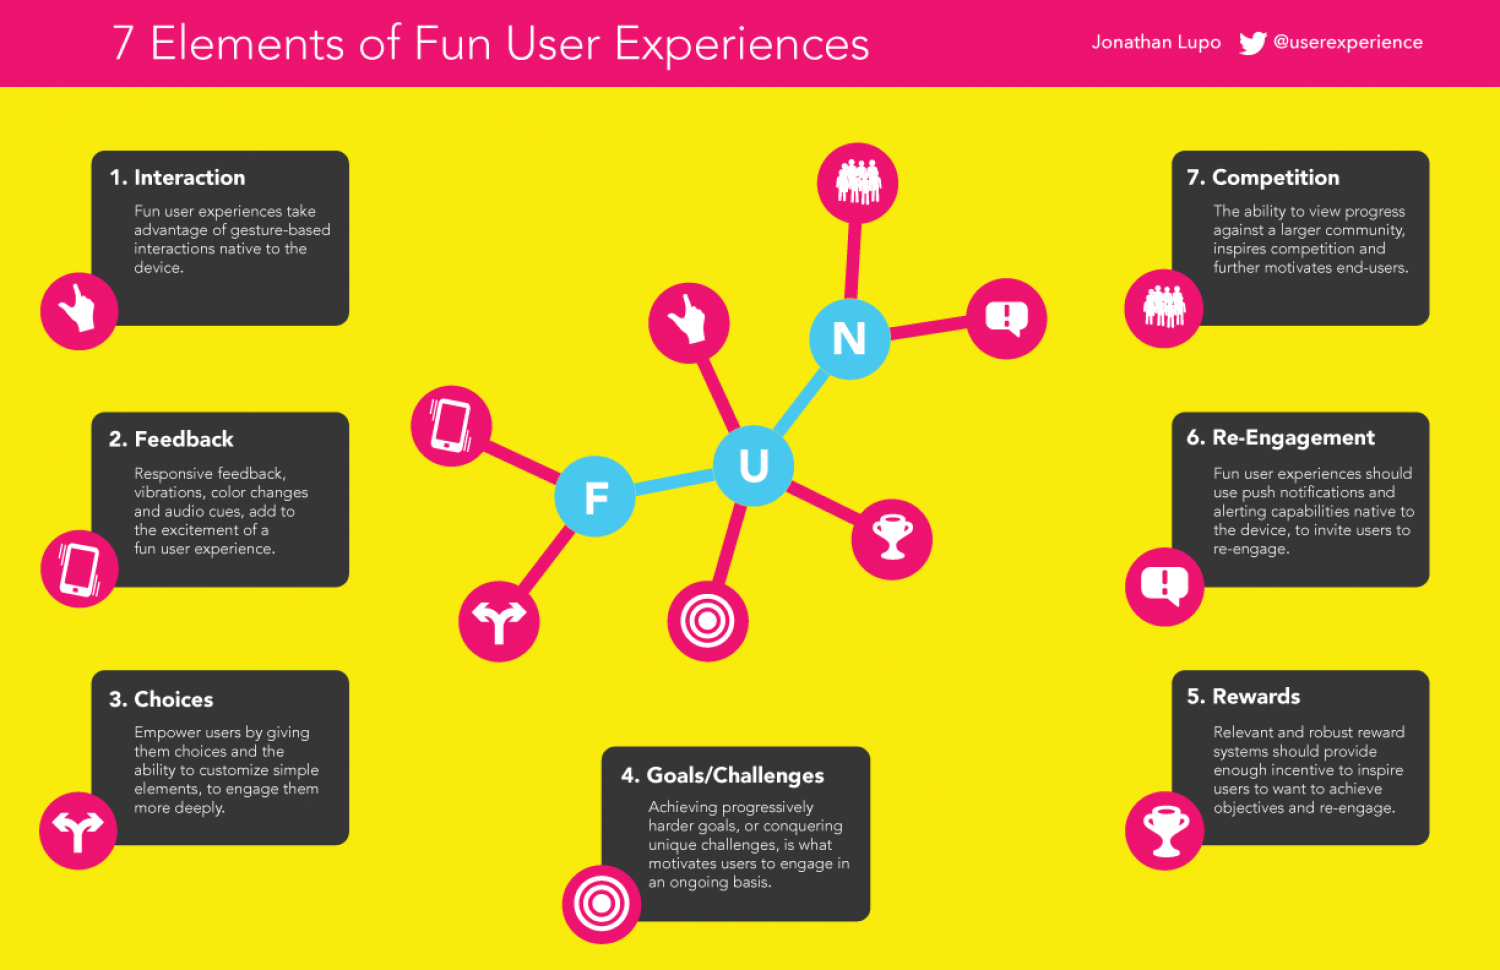 7 Elements of Fun User Experiences Infographic